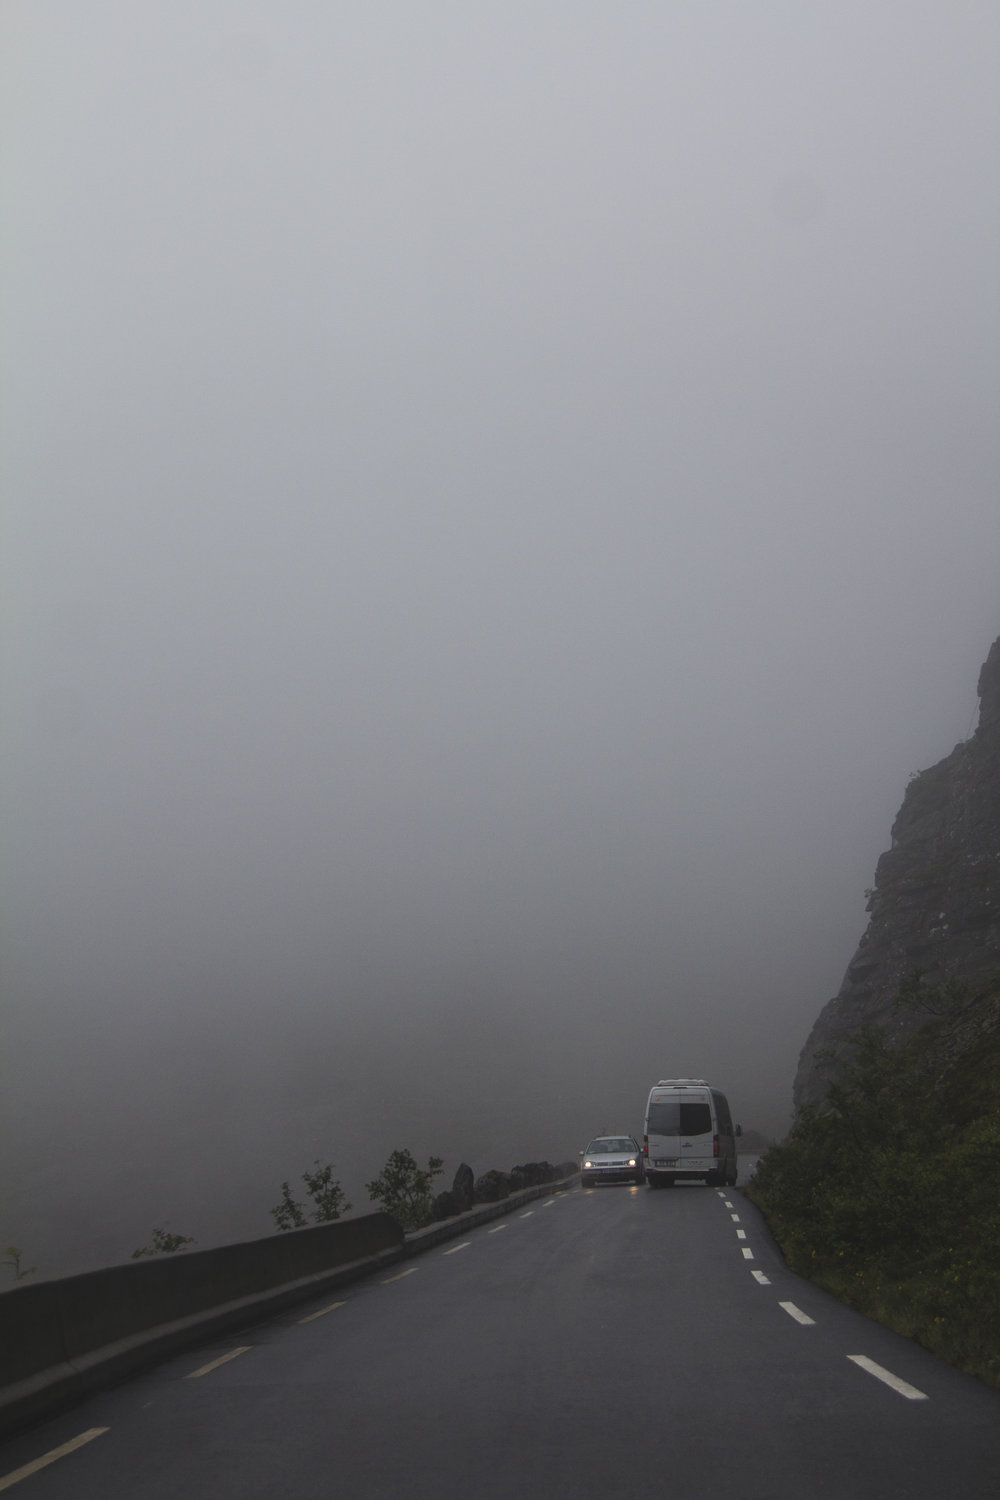 Driving into a cloud on narrow roads.